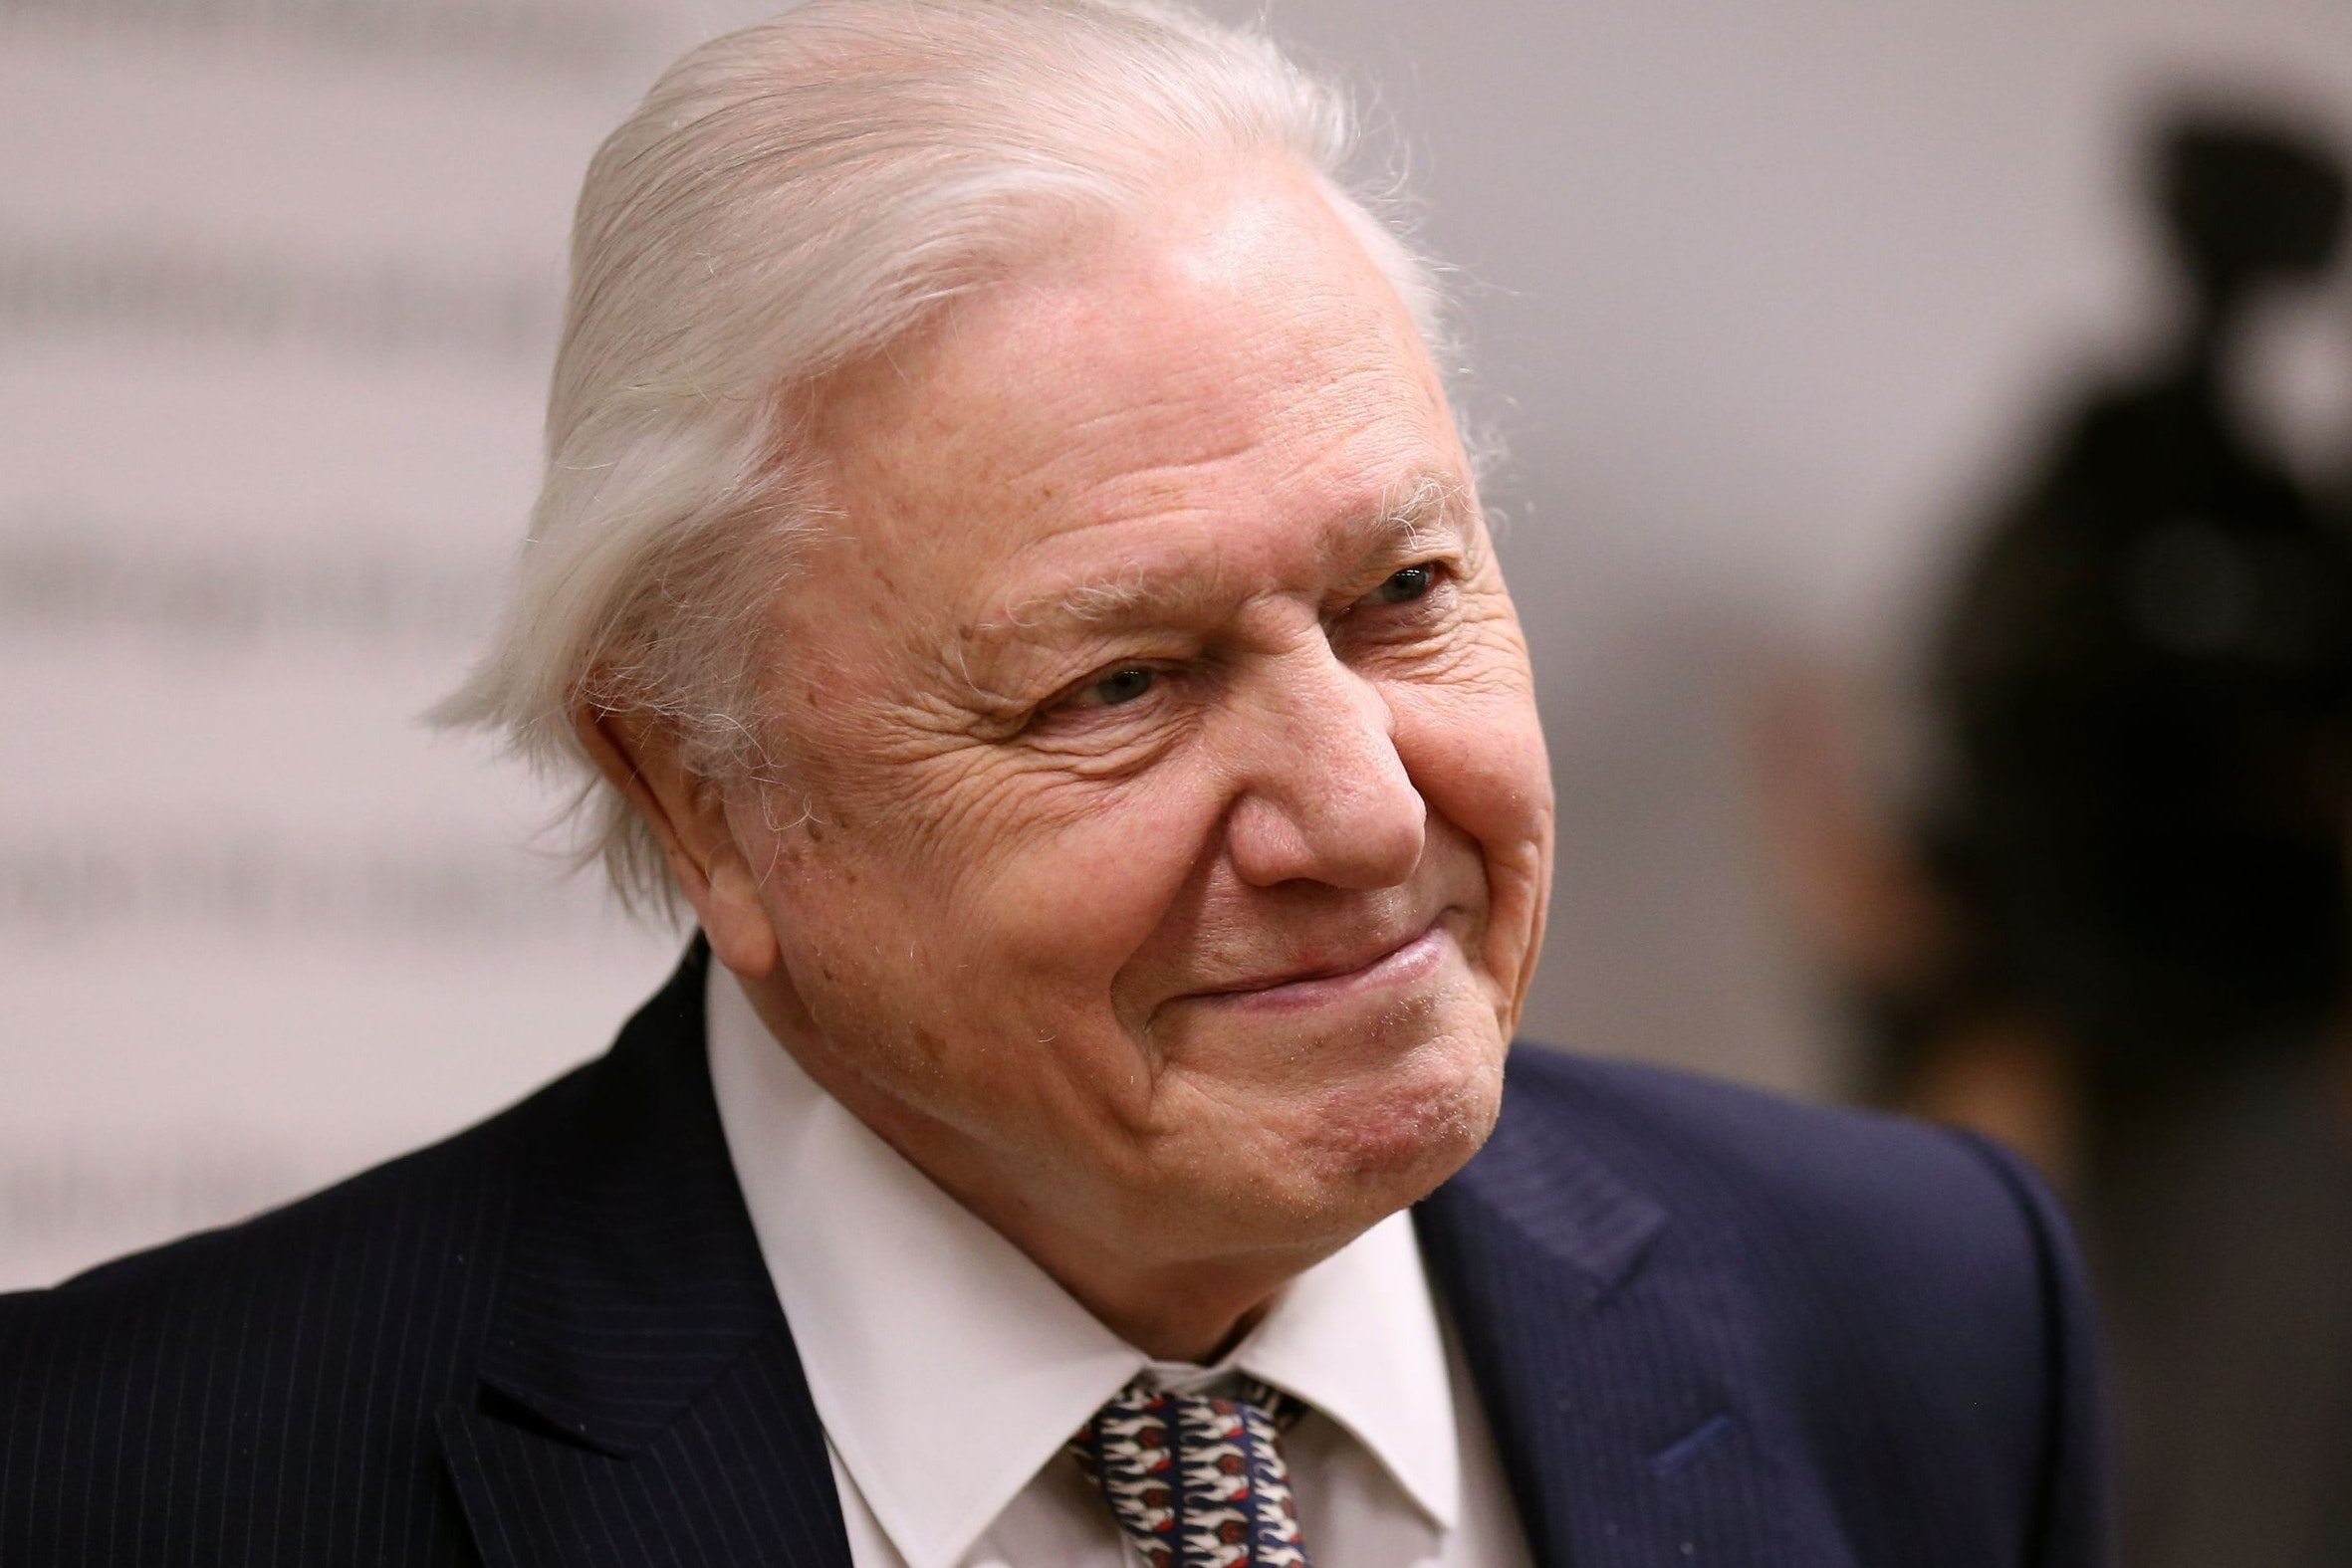 Sir David Attenborough warned about the future of the planet (Chris Radburn/PA)